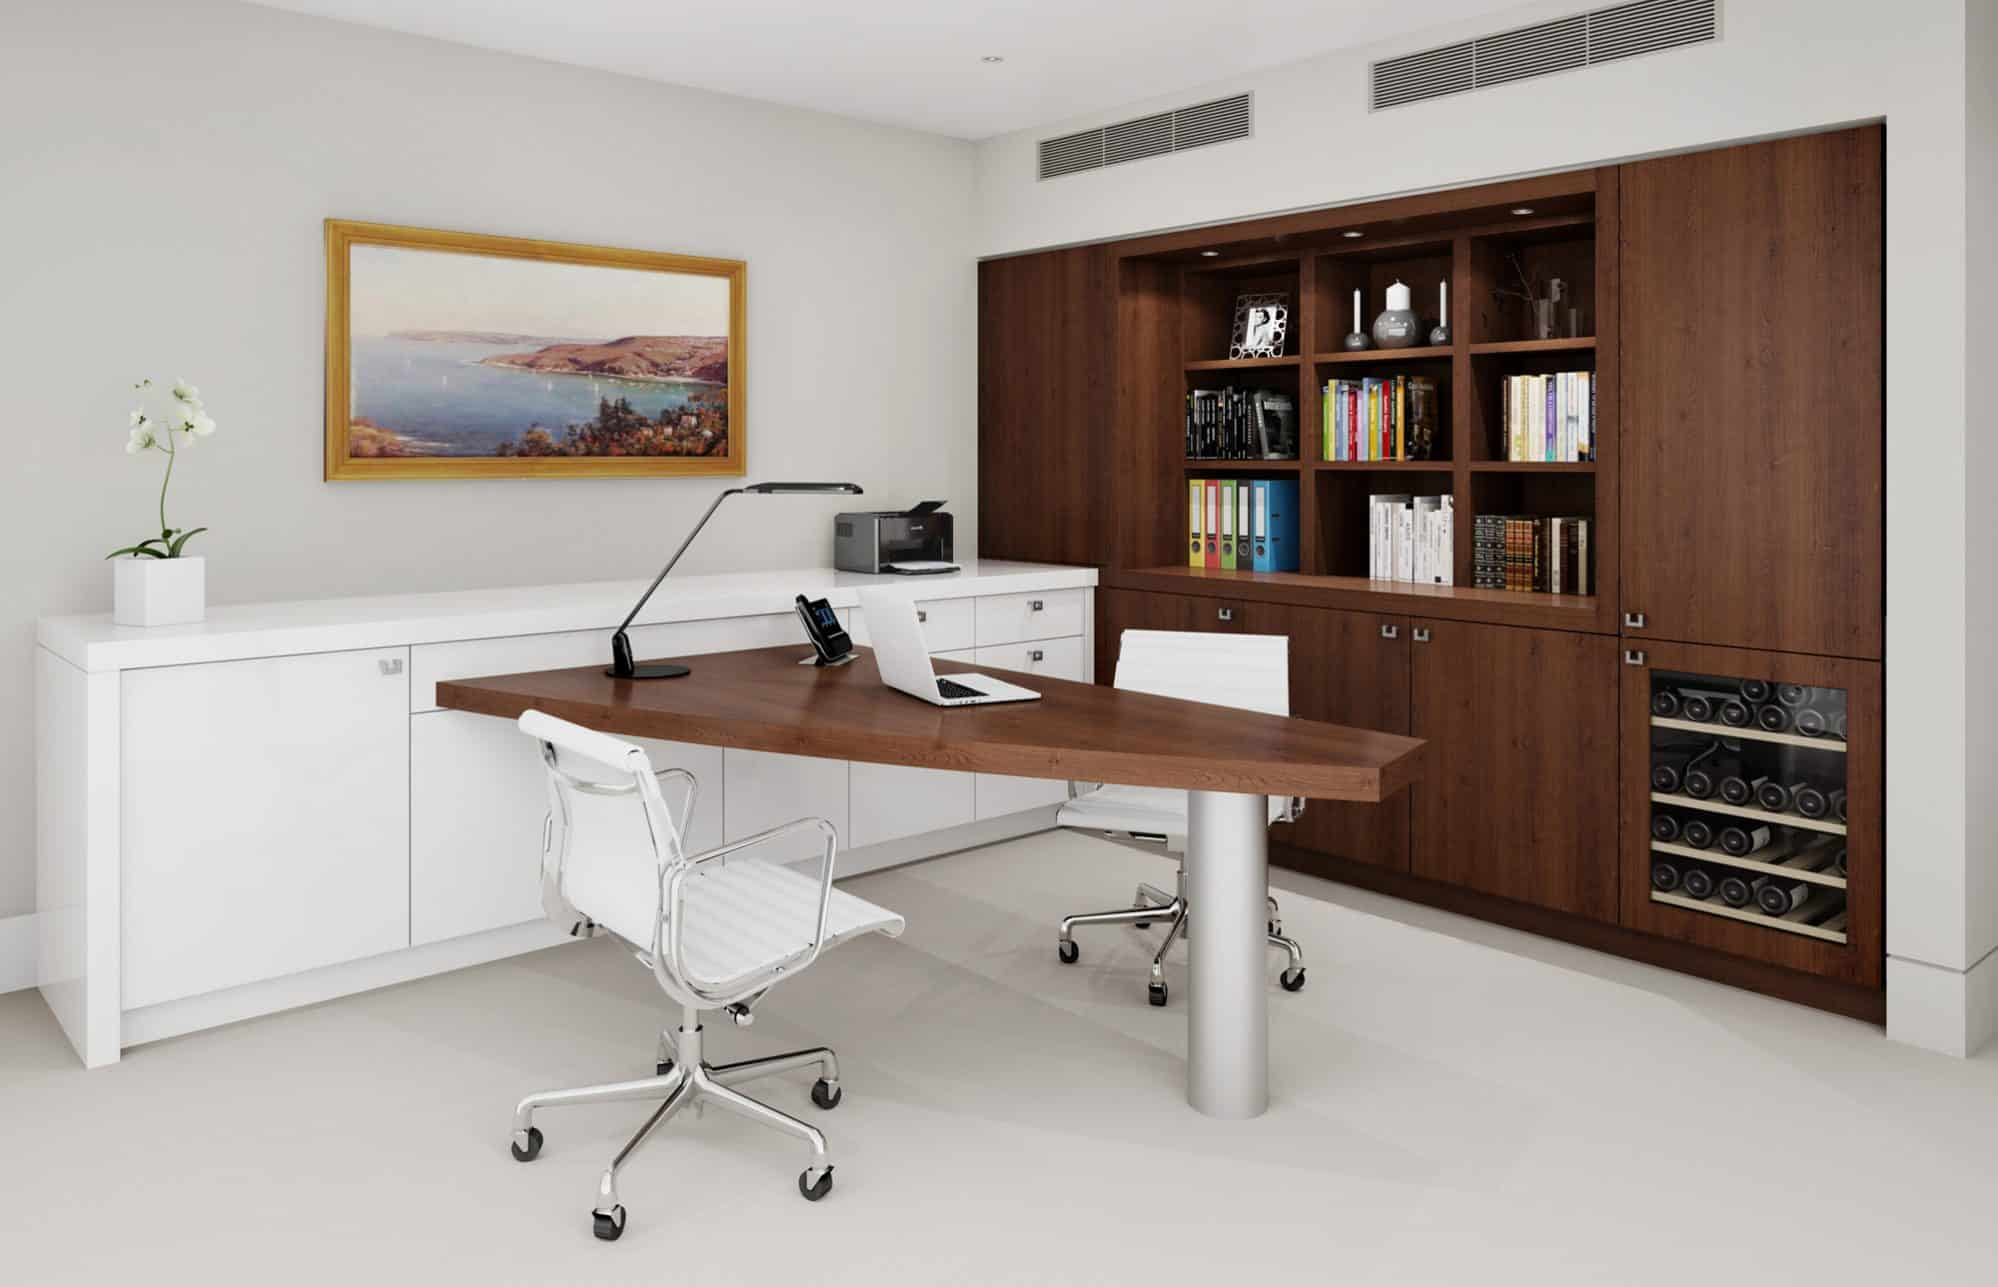 The design for the home office